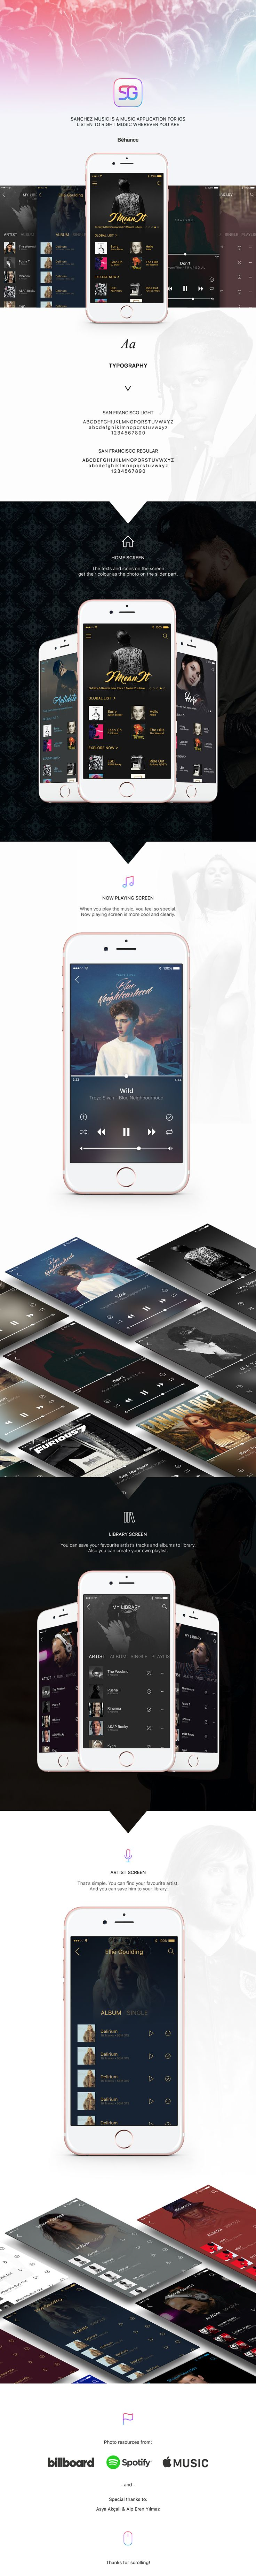 http://www.appdesignserved.co/gallery/33228715/Sanchez-Music-Mobile-UIUX-Design